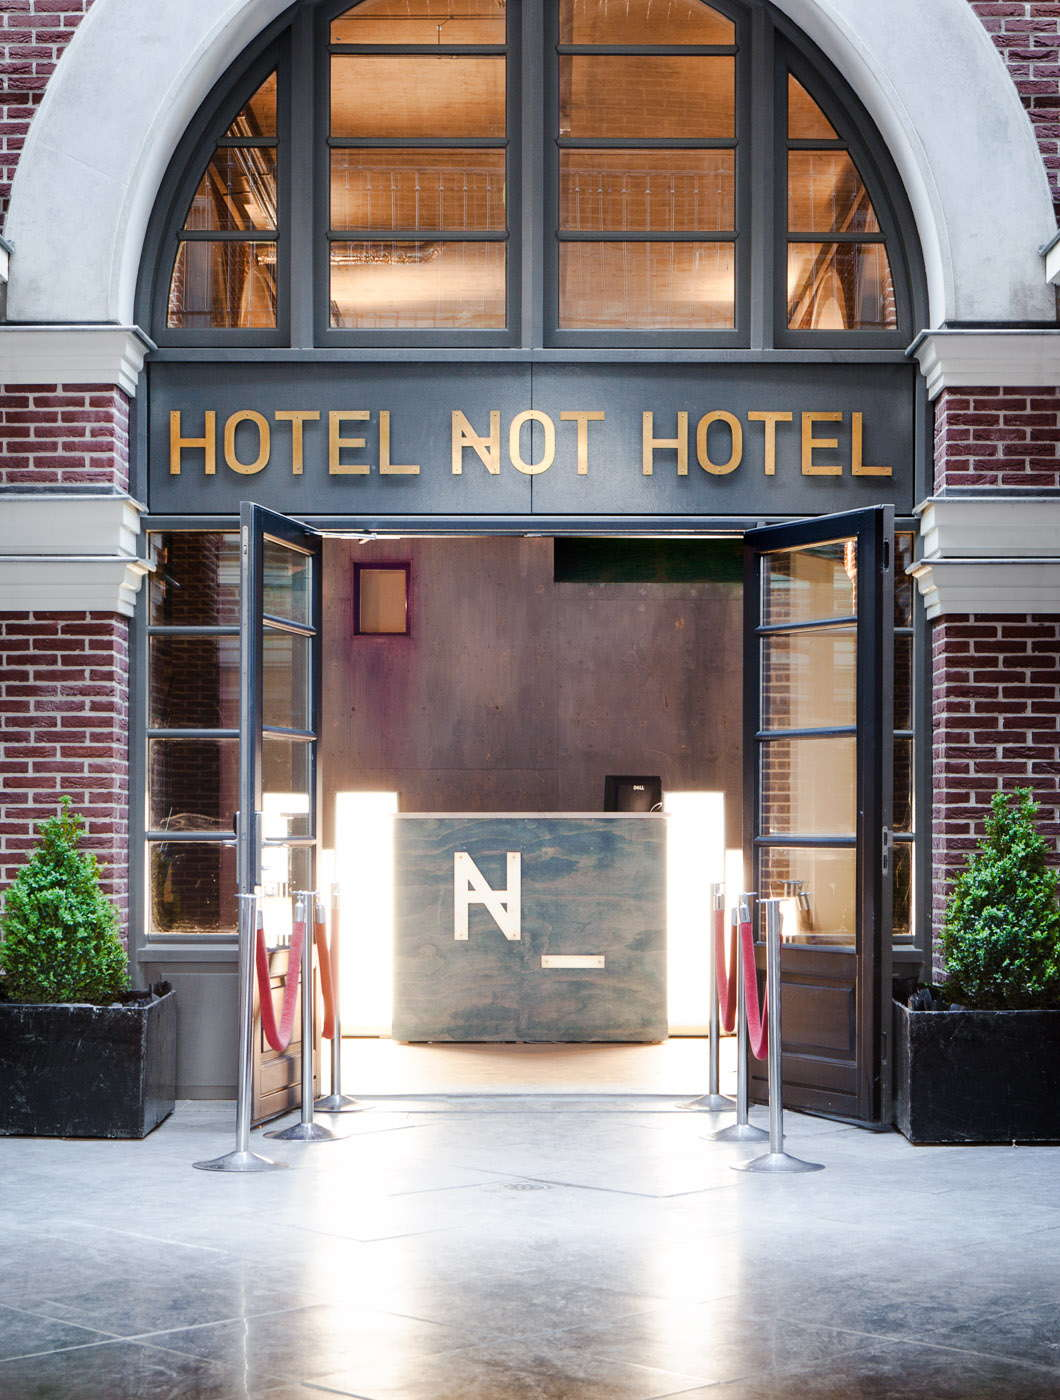 A hotel not